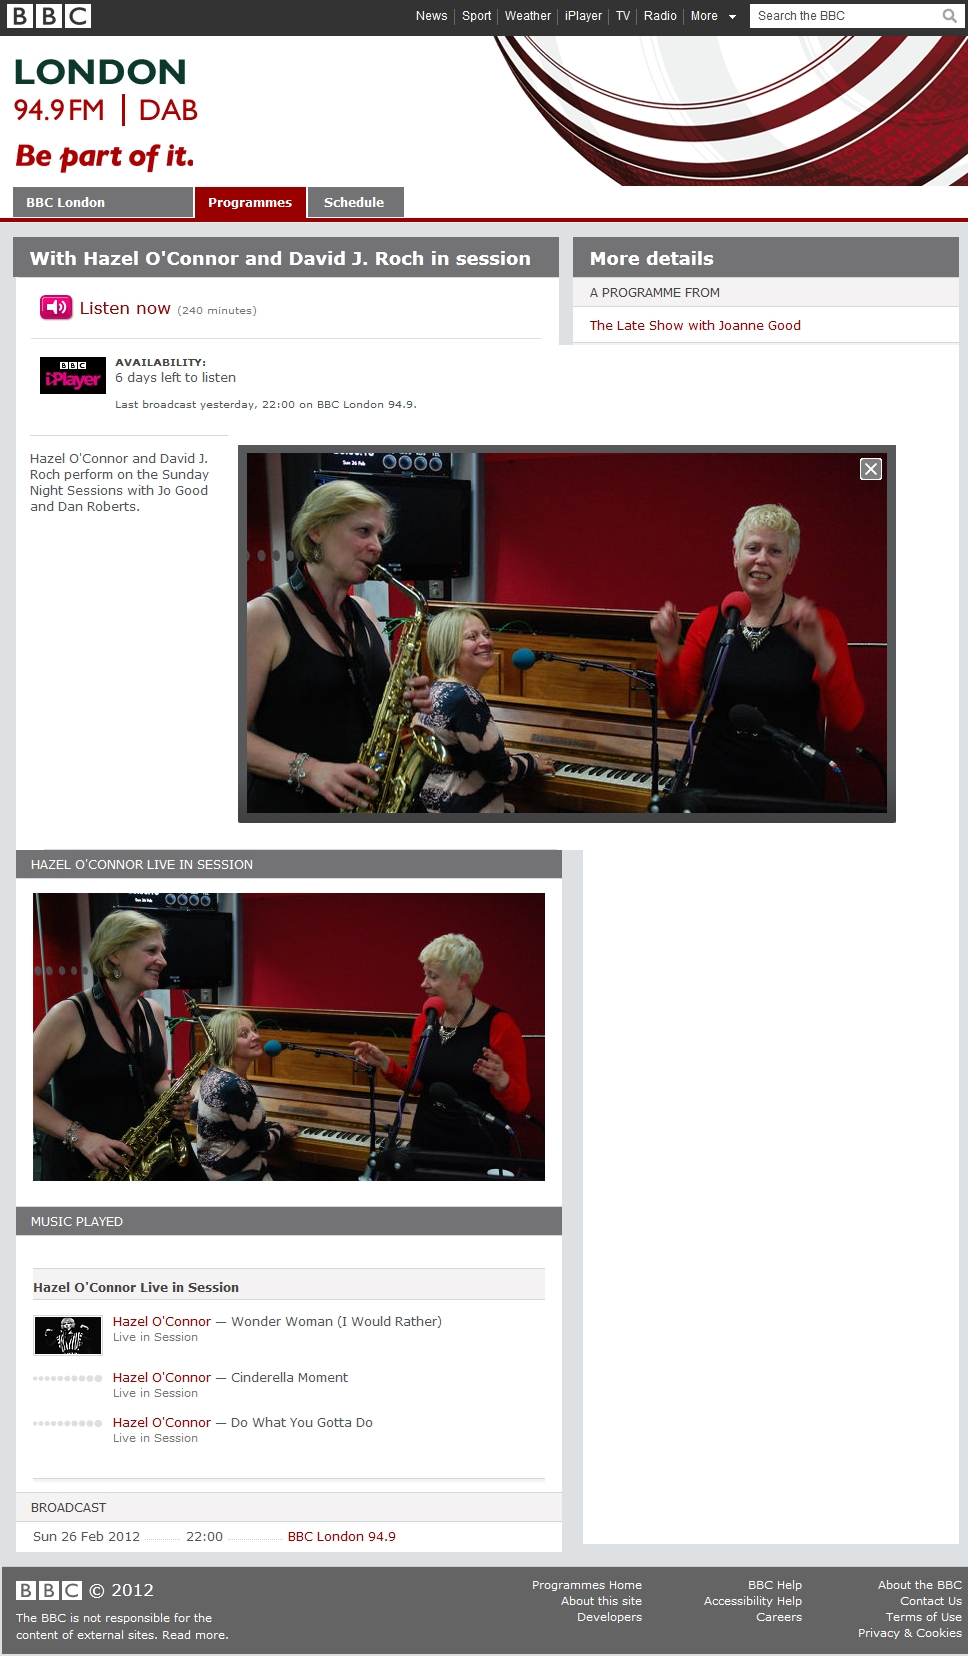 HAZEL O'CONNOR - CLARE HIRST - SARAH FISHER - BBC LONDON JOANNE GOOD - FEB 2012